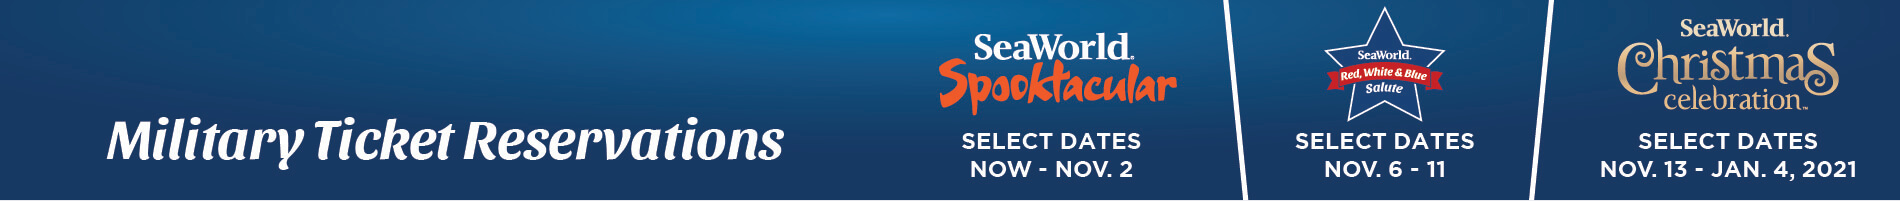 SeaWorld San Diego Event Reservations